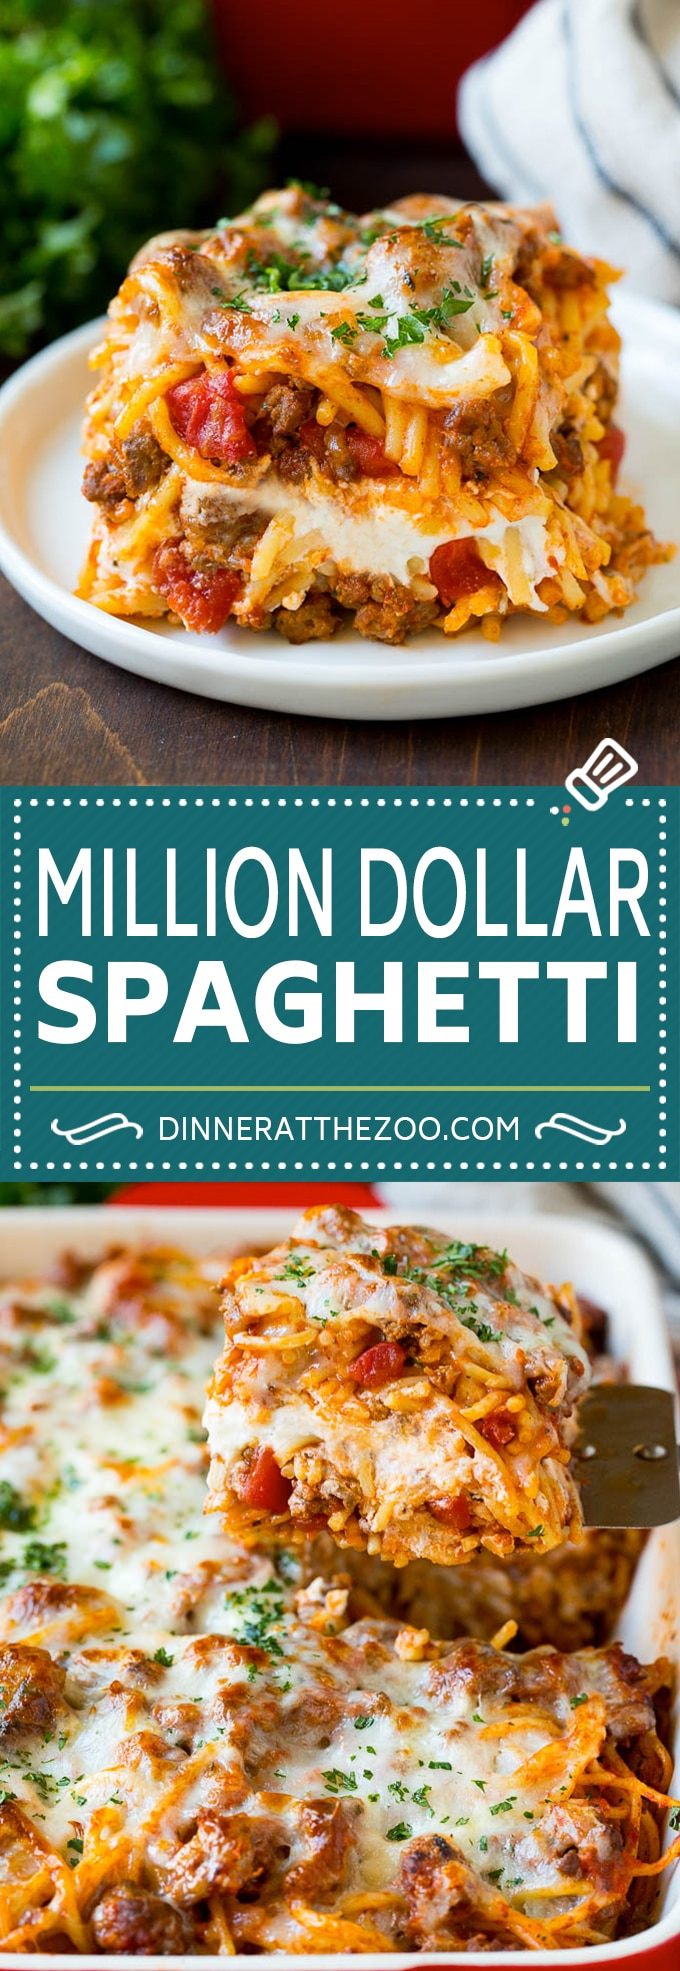 This million dollar spaghetti is tender pasta tossed in a hearty meat sauce, then layered with four types of cheese and baked to golden brown perfection.